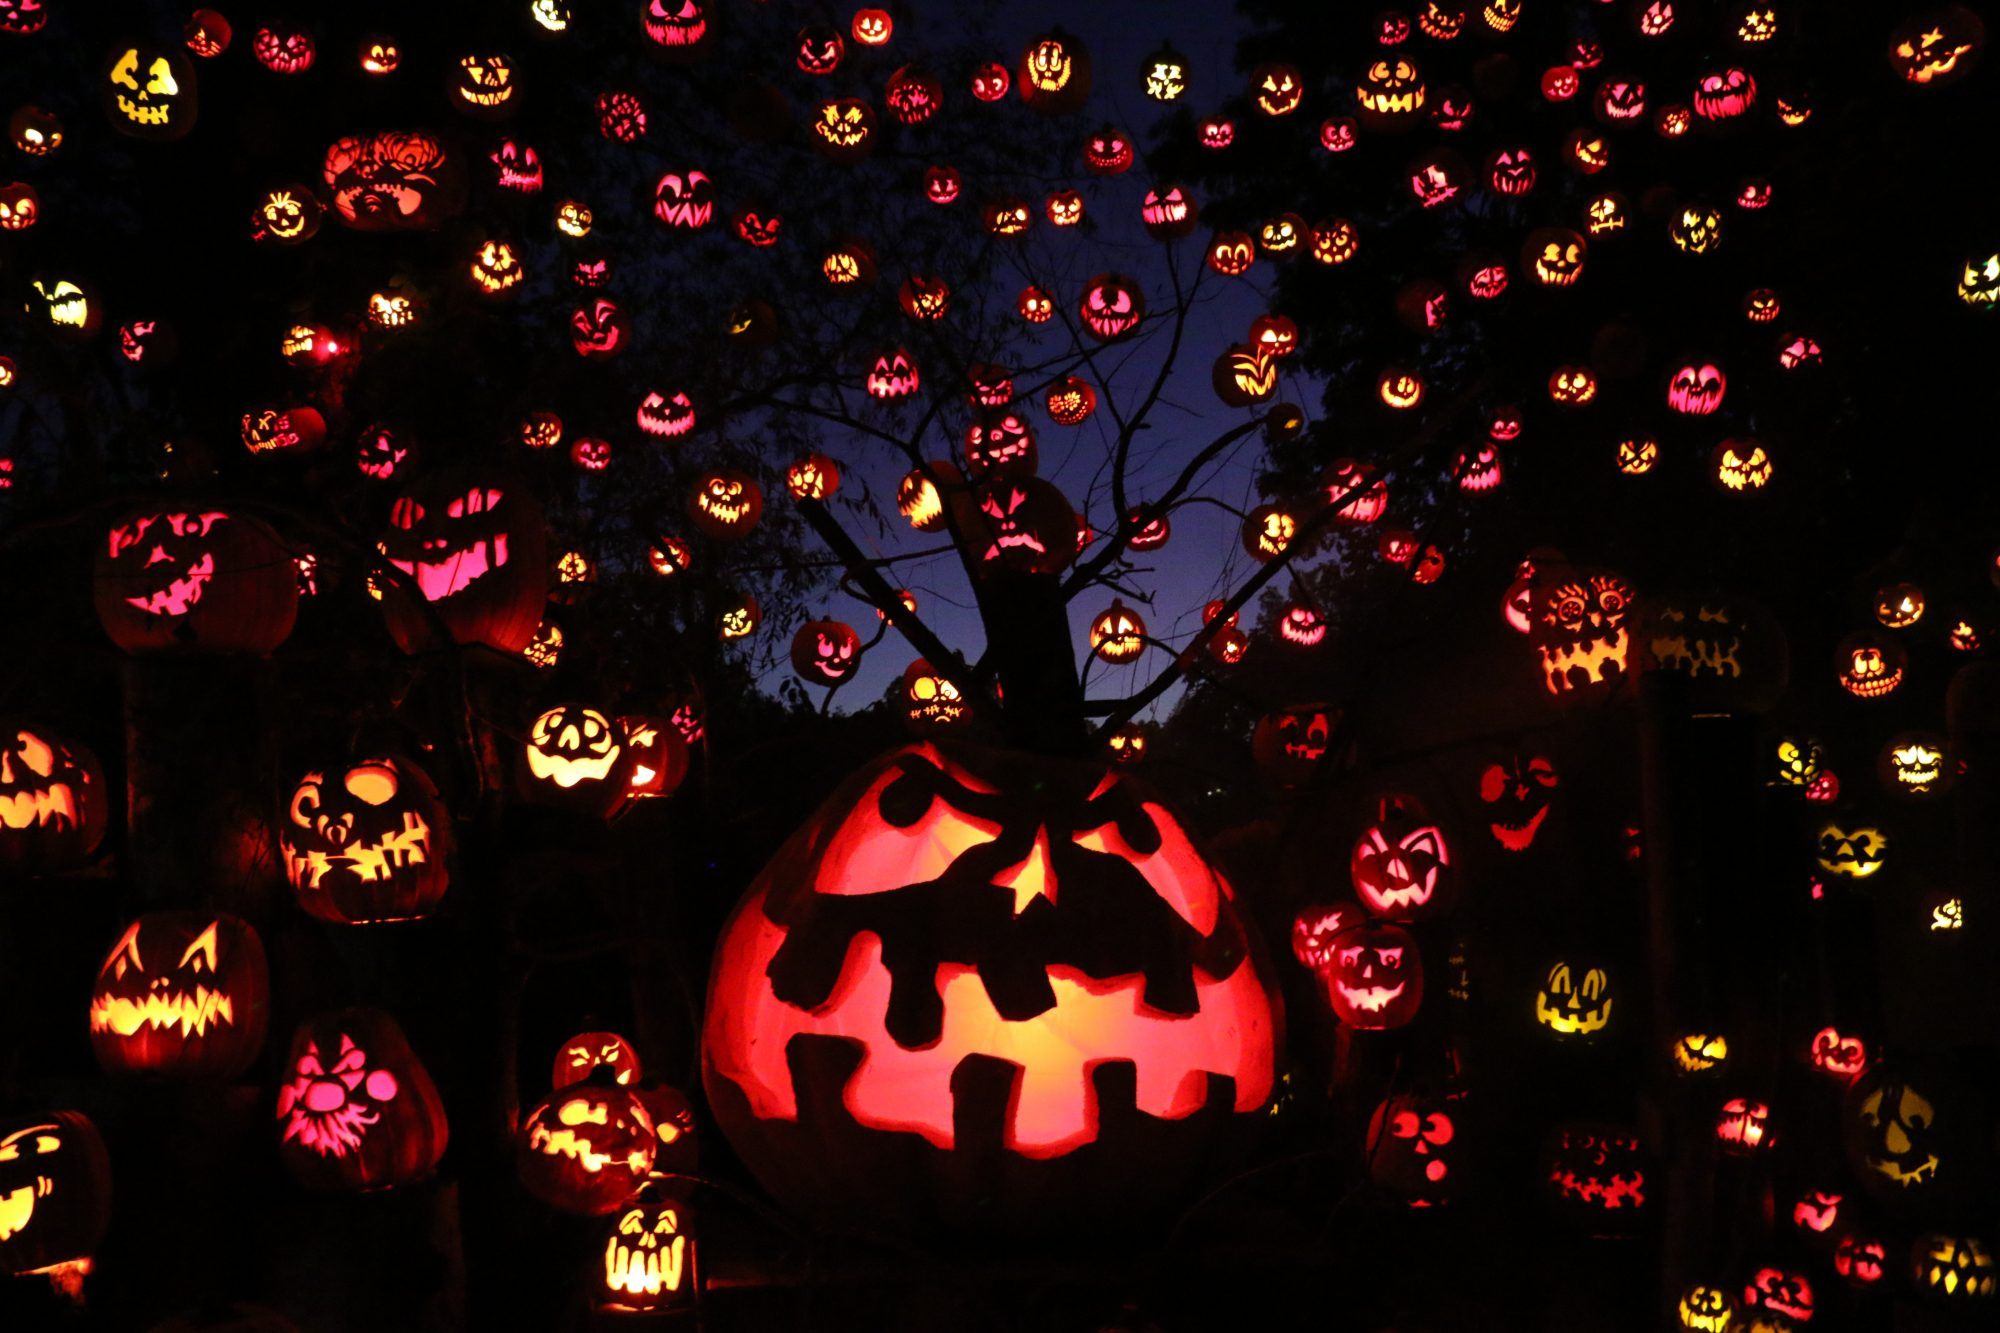 Halloween Activites 2020 Near Me 9 Halloween Activities Still Happening Near You in 2020 | Parents